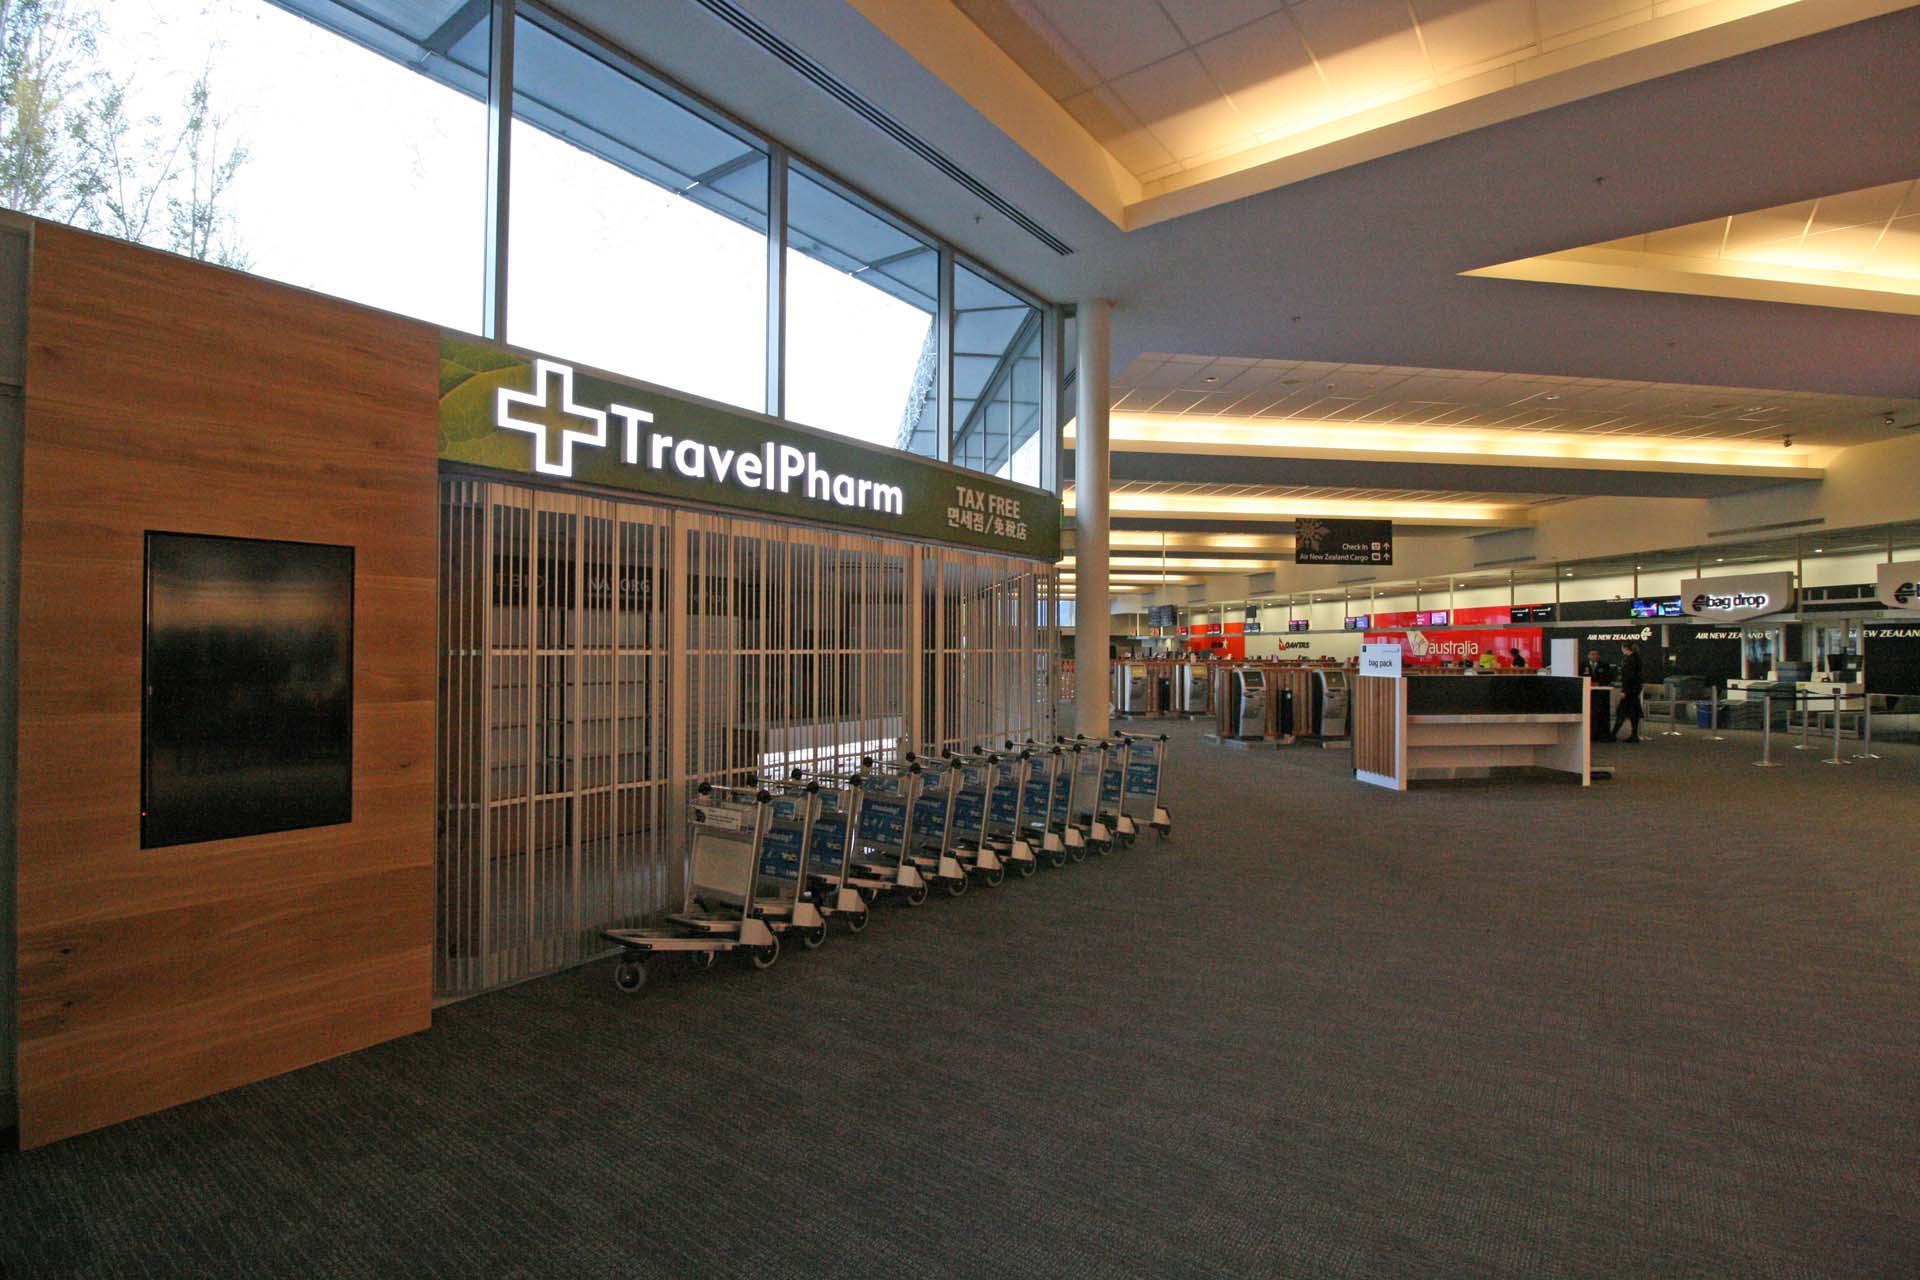 TravelPharm Fitout Queenstown